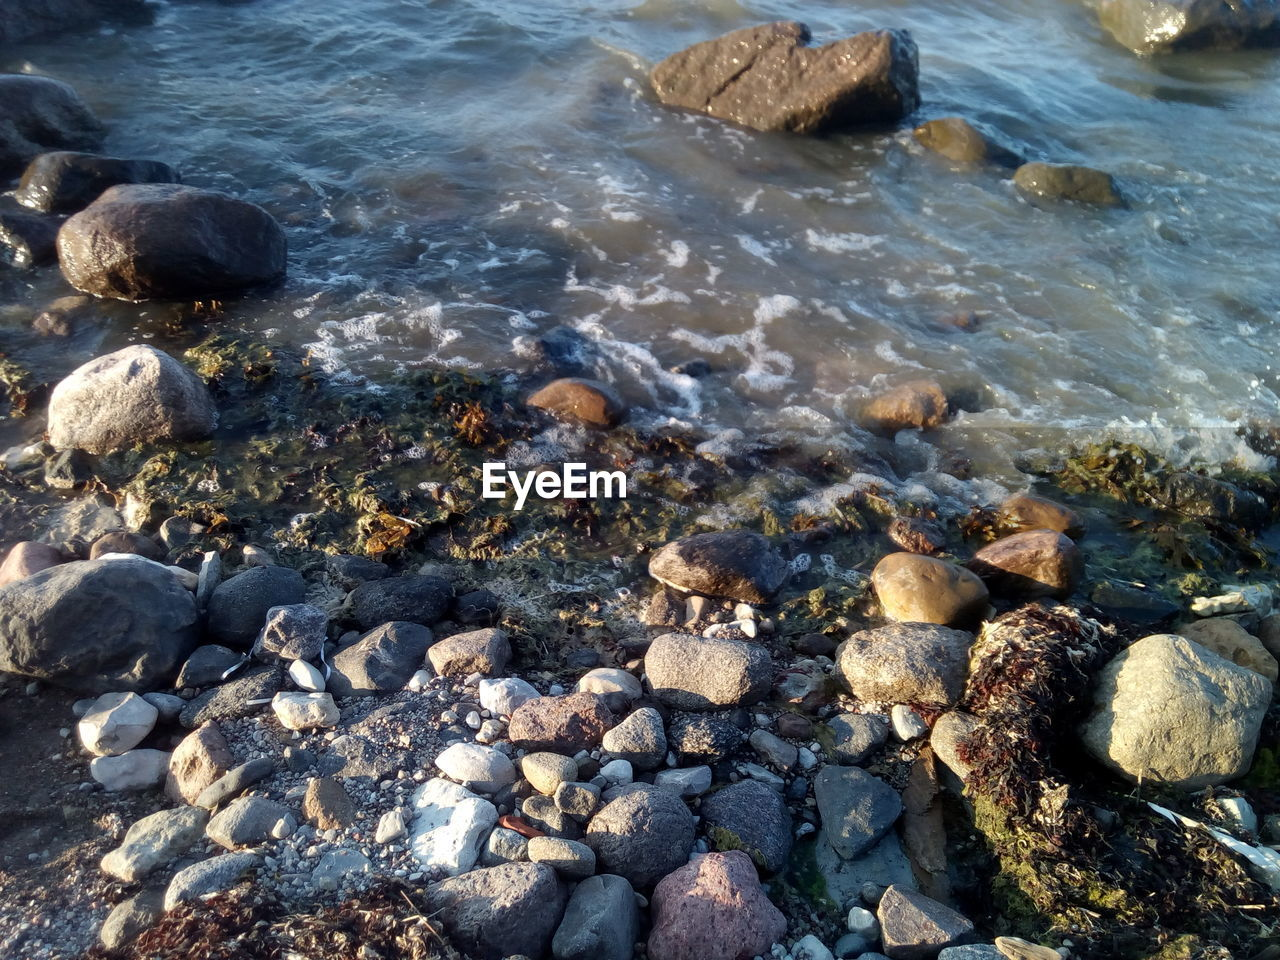 water, rock, solid, beach, sea, land, rock - object, nature, day, stone - object, stone, motion, pebble, high angle view, beauty in nature, aquatic sport, outdoors, sport, wave, flowing, flowing water, shallow, clean